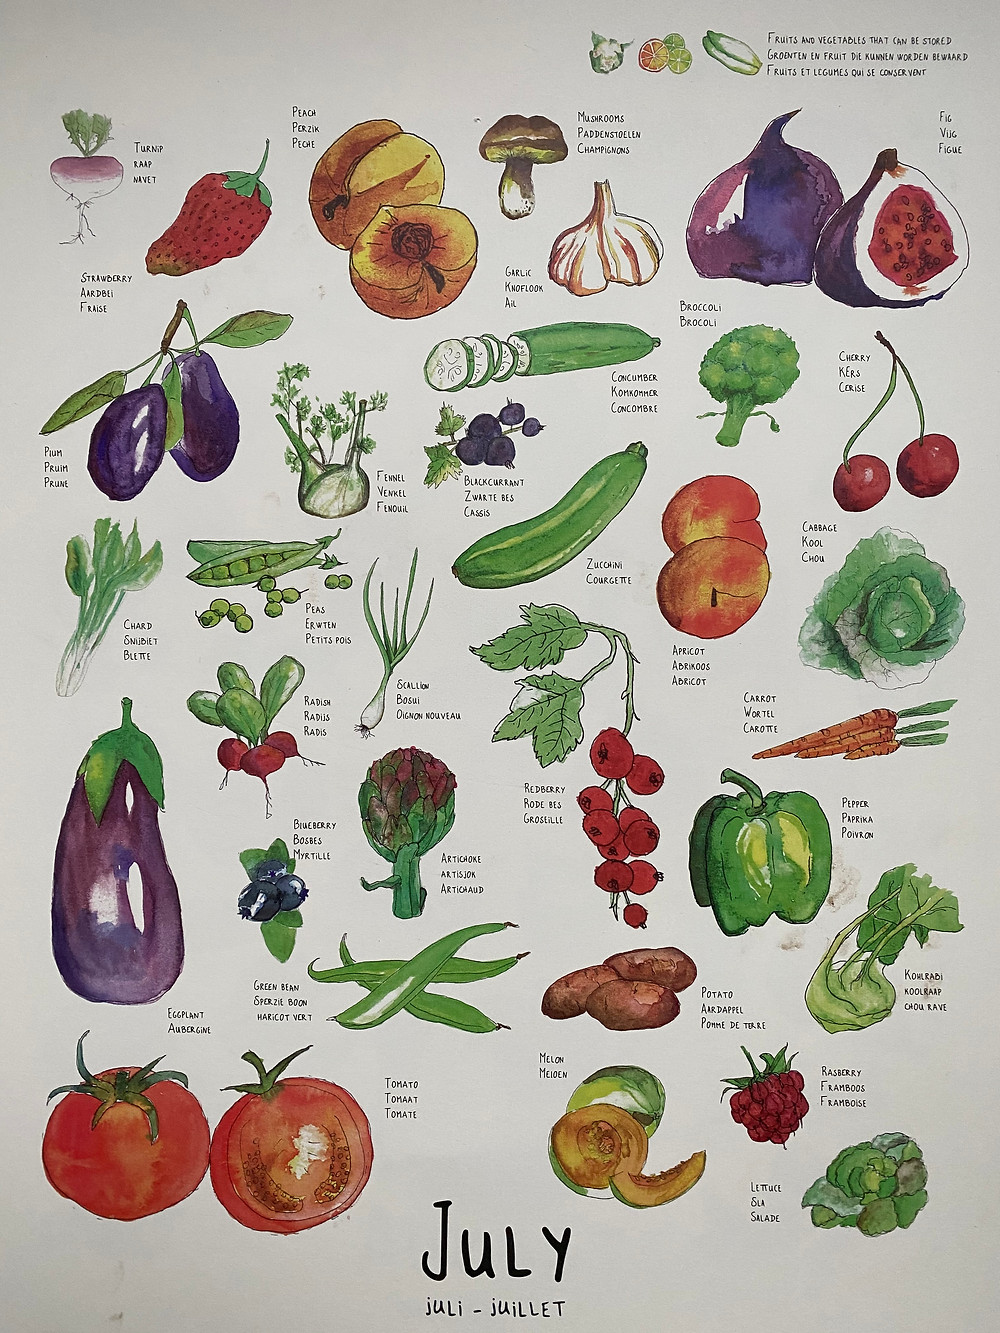 Watercolours images of seasonal produce in Central Europe for July. Credit: www.griveau.net